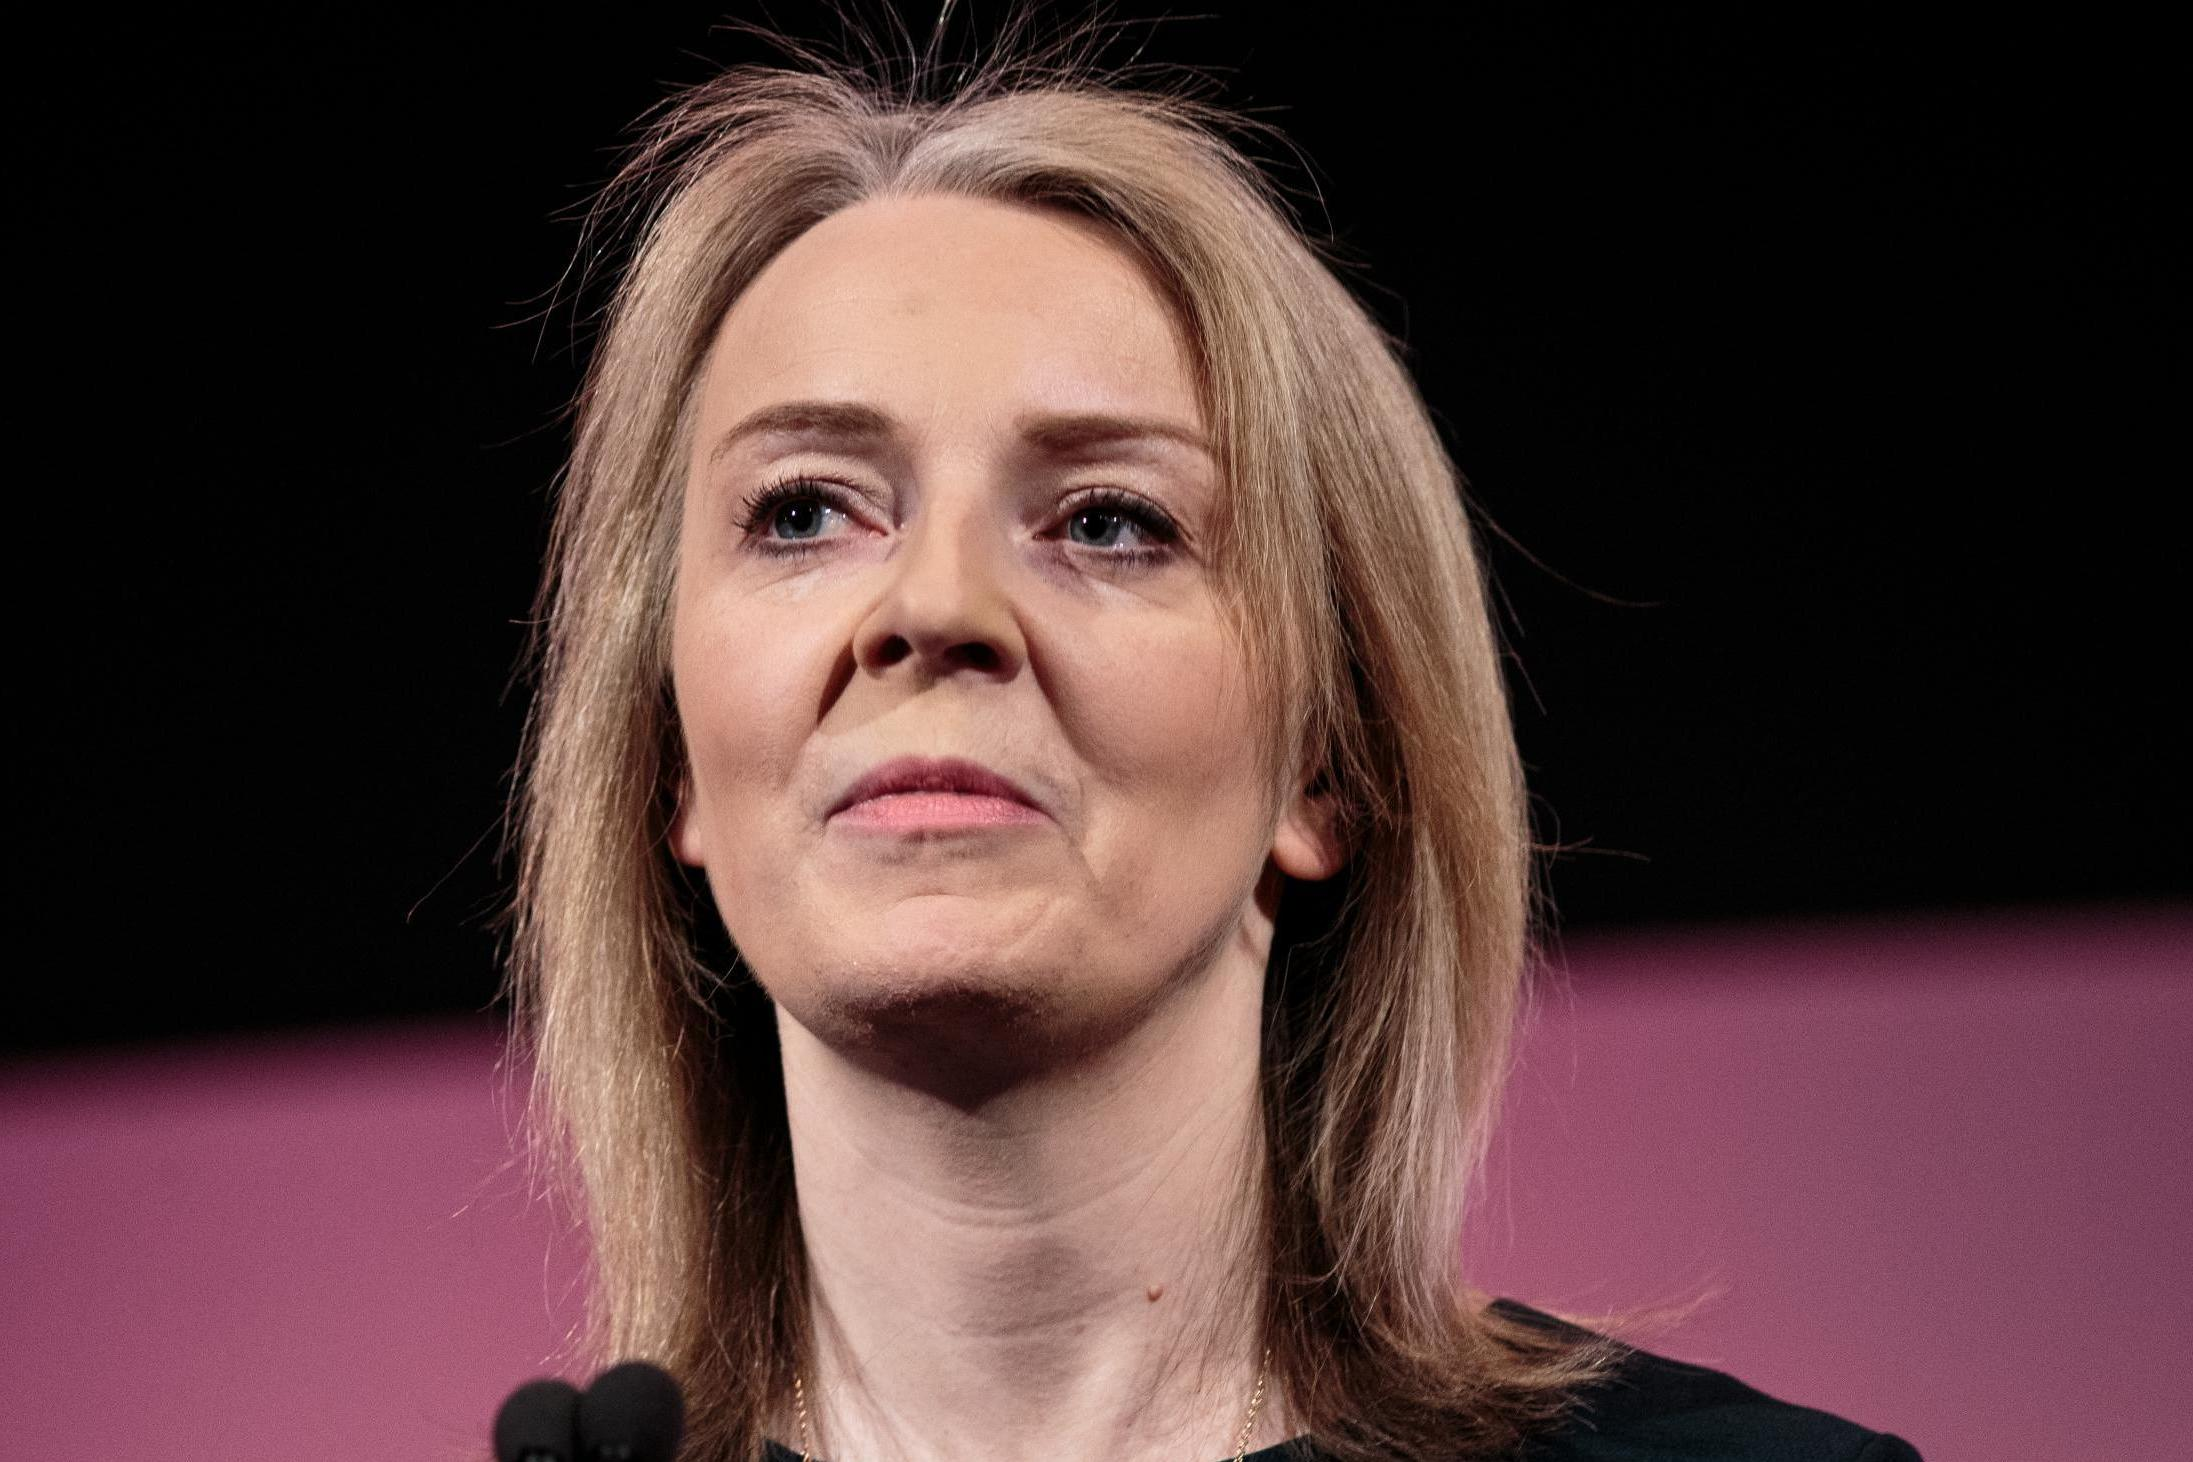 Liz Truss: Tory minister admits approving illegal arms sales to Saudi Arabia again and says 'more cases could come to light'